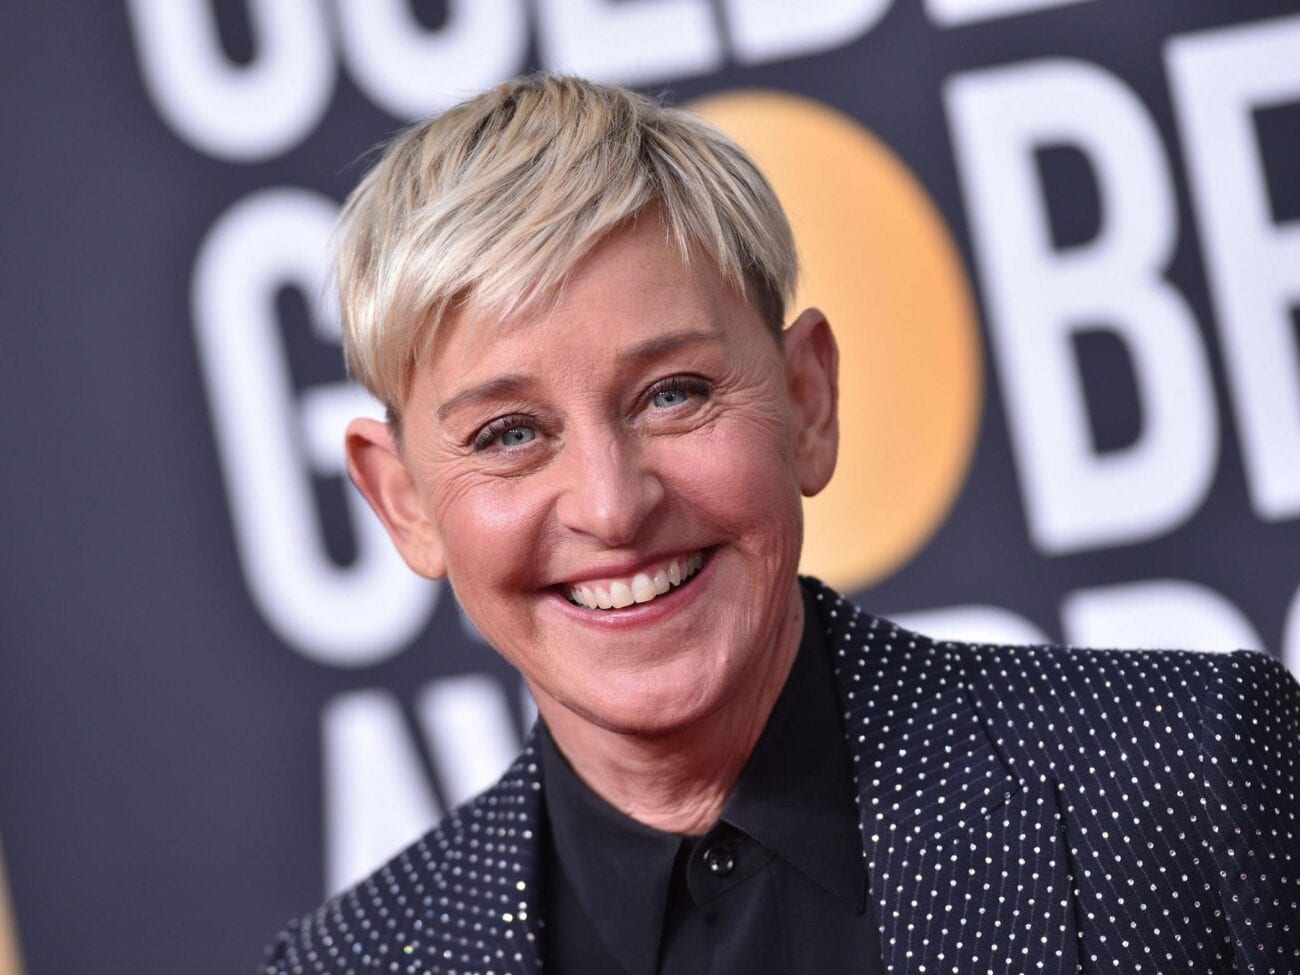 'The Ellen DeGeneres Show' has been under scrutiny after allegations came to light. Here's what to know about the show's future in Australia.